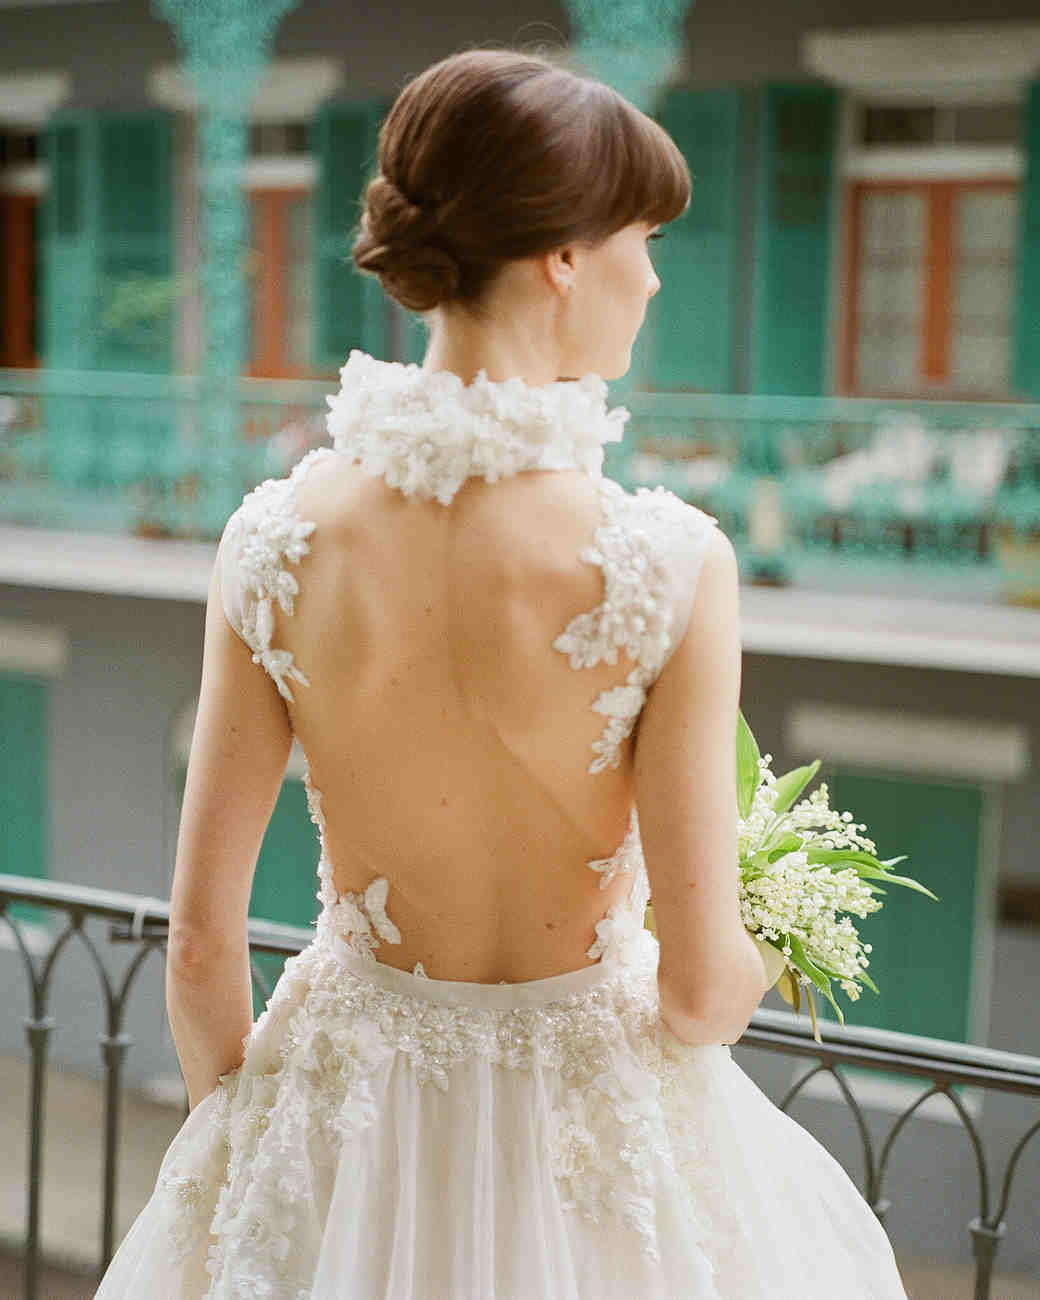 haylie brad wedding dress back